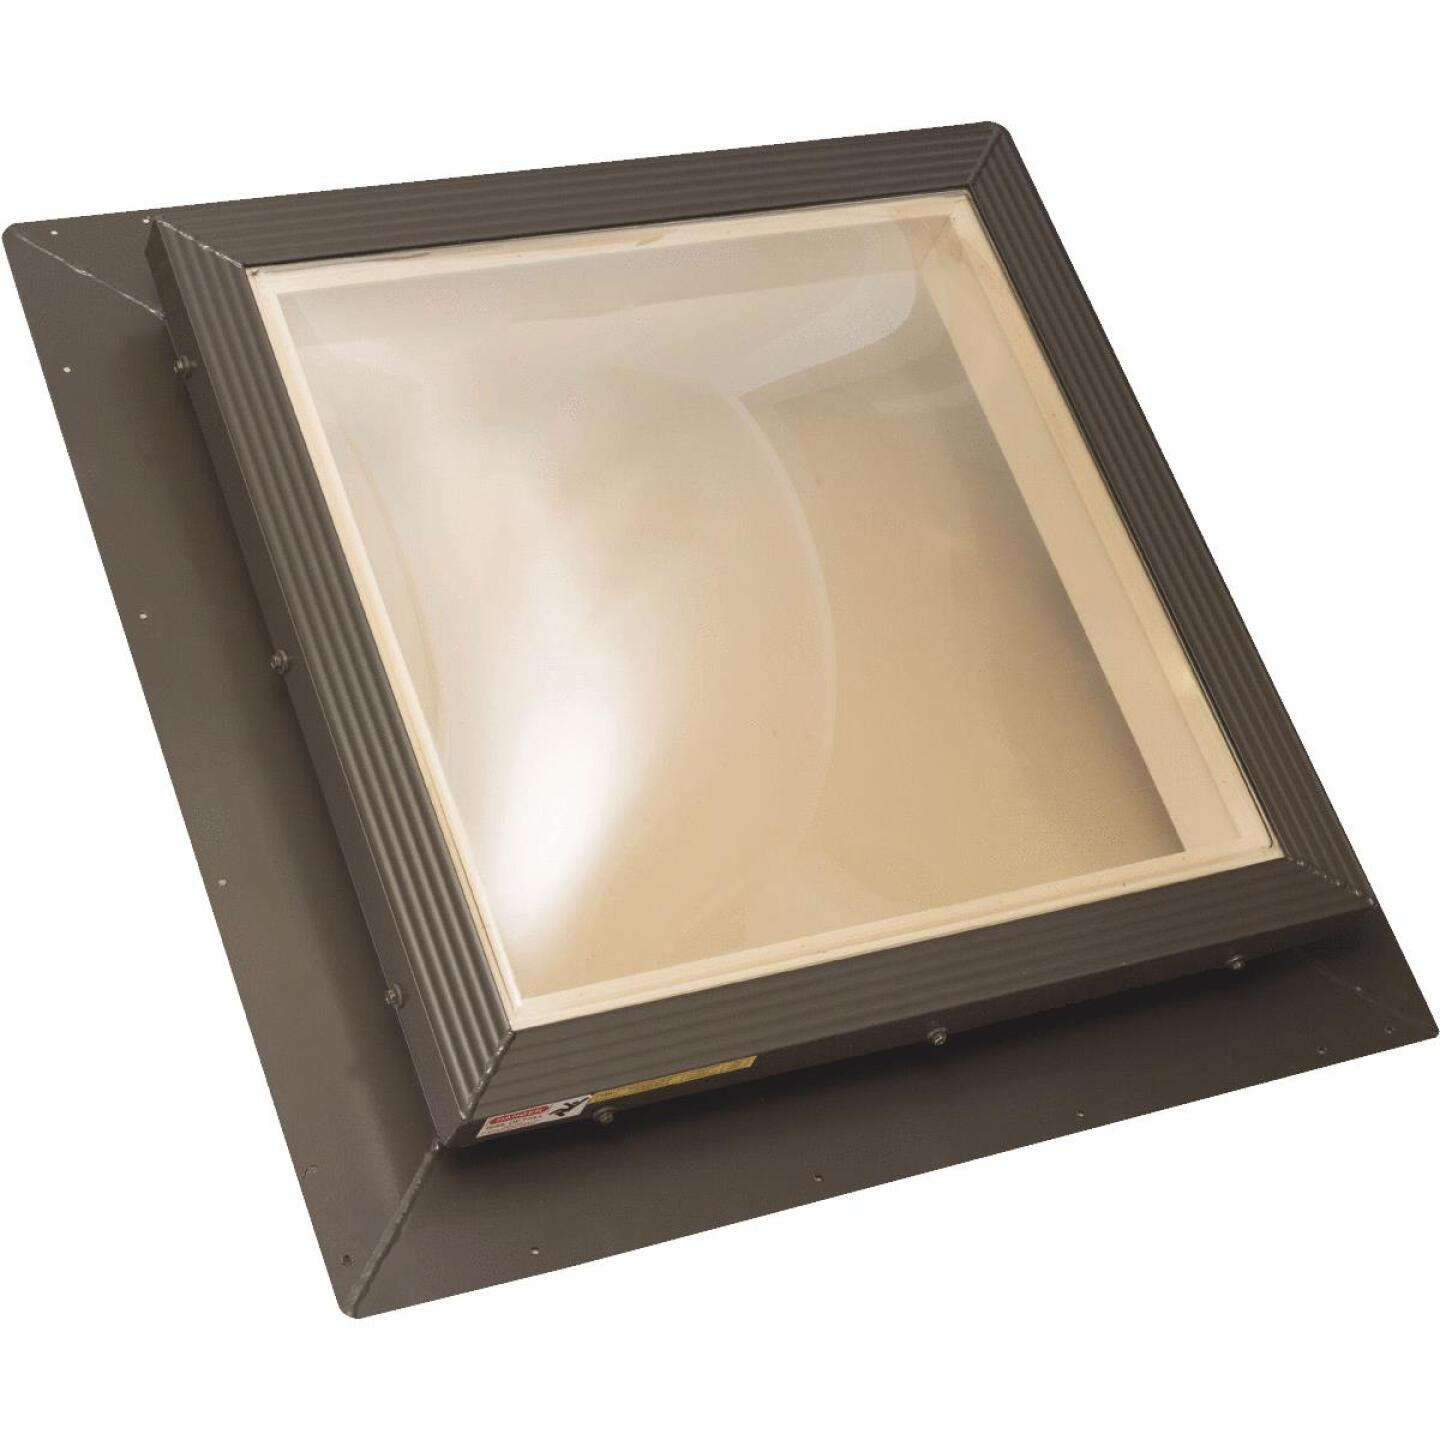 Kennedy Skylights 24 In. x 24 In. Bronze Hurricane Approved Skylight Image 1